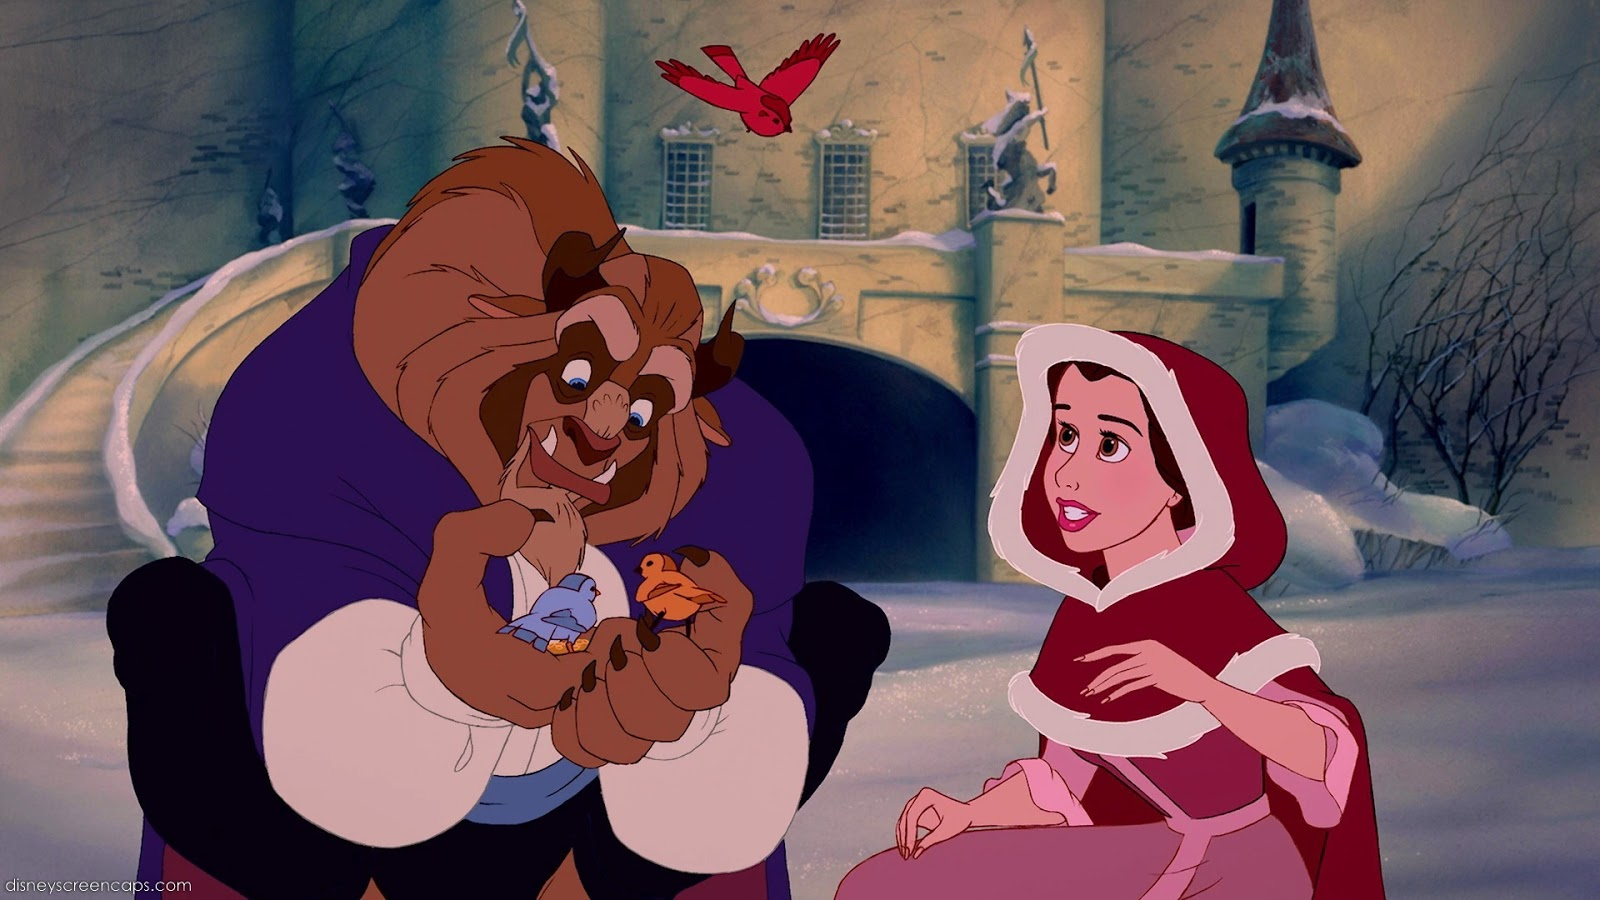 Mr  Movie: My Top 10 Favorite Animated Couples